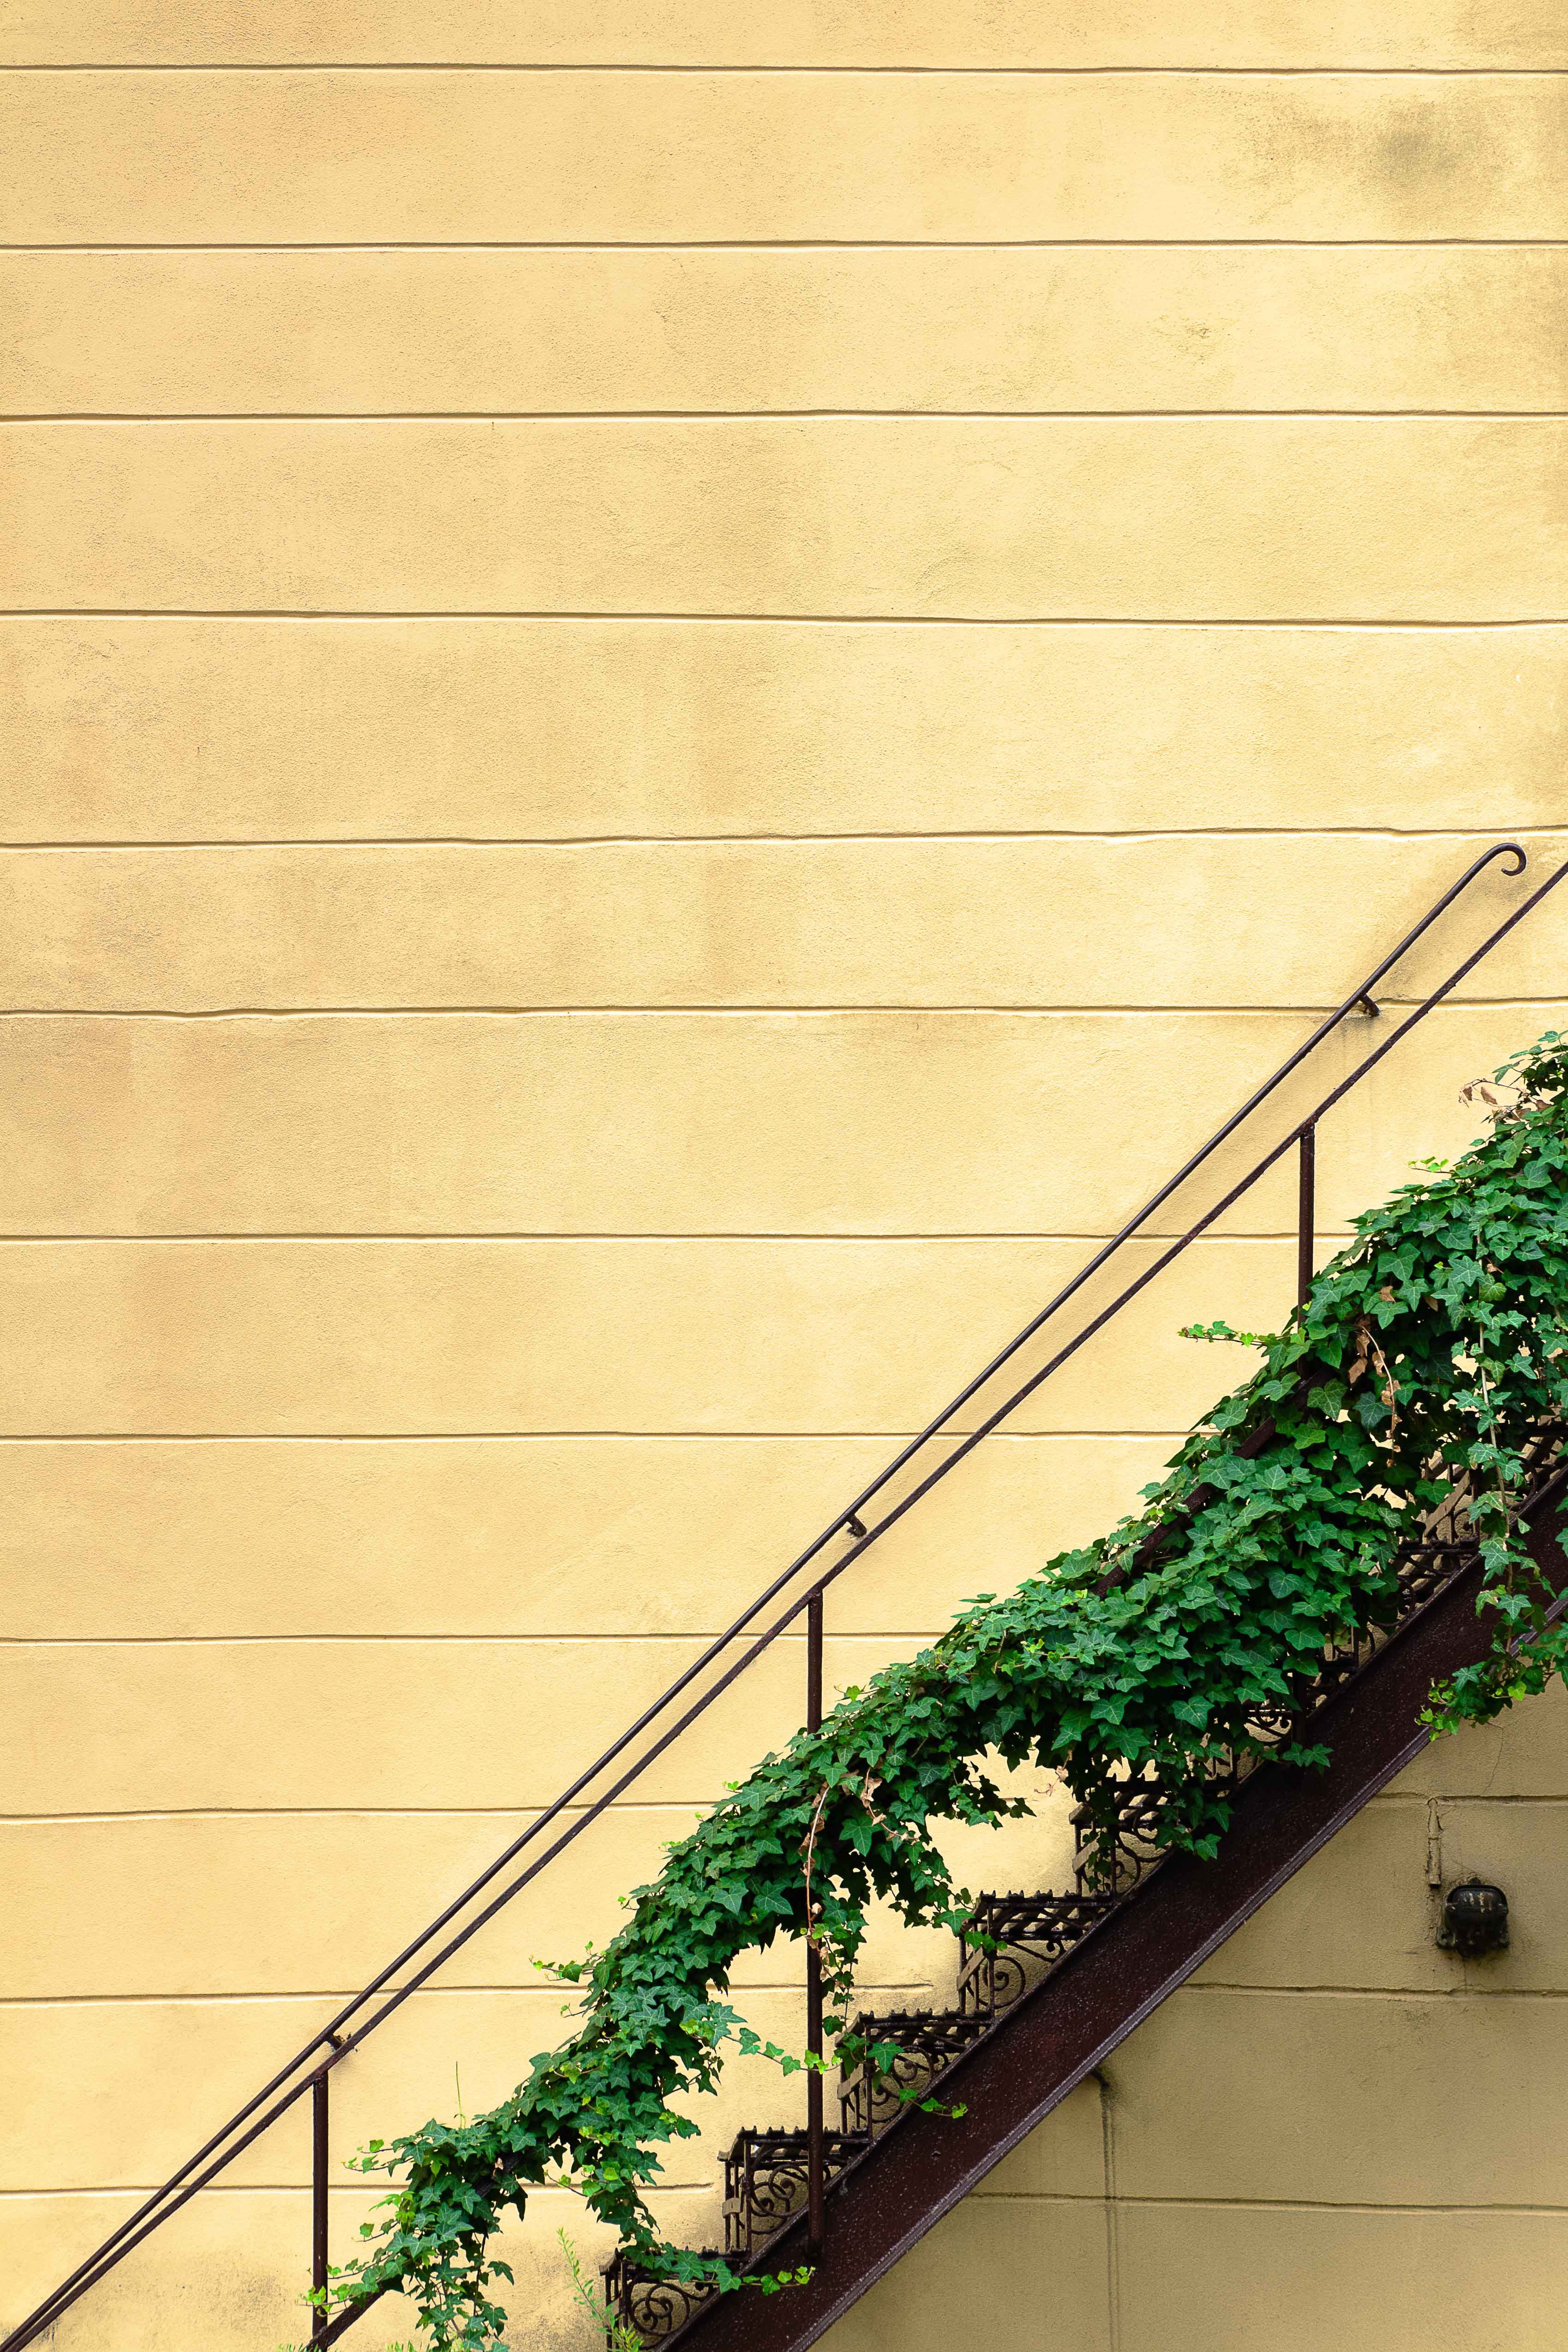 72293 download wallpaper Wall, Plant, Minimalism, Stairs, Ladder screensavers and pictures for free